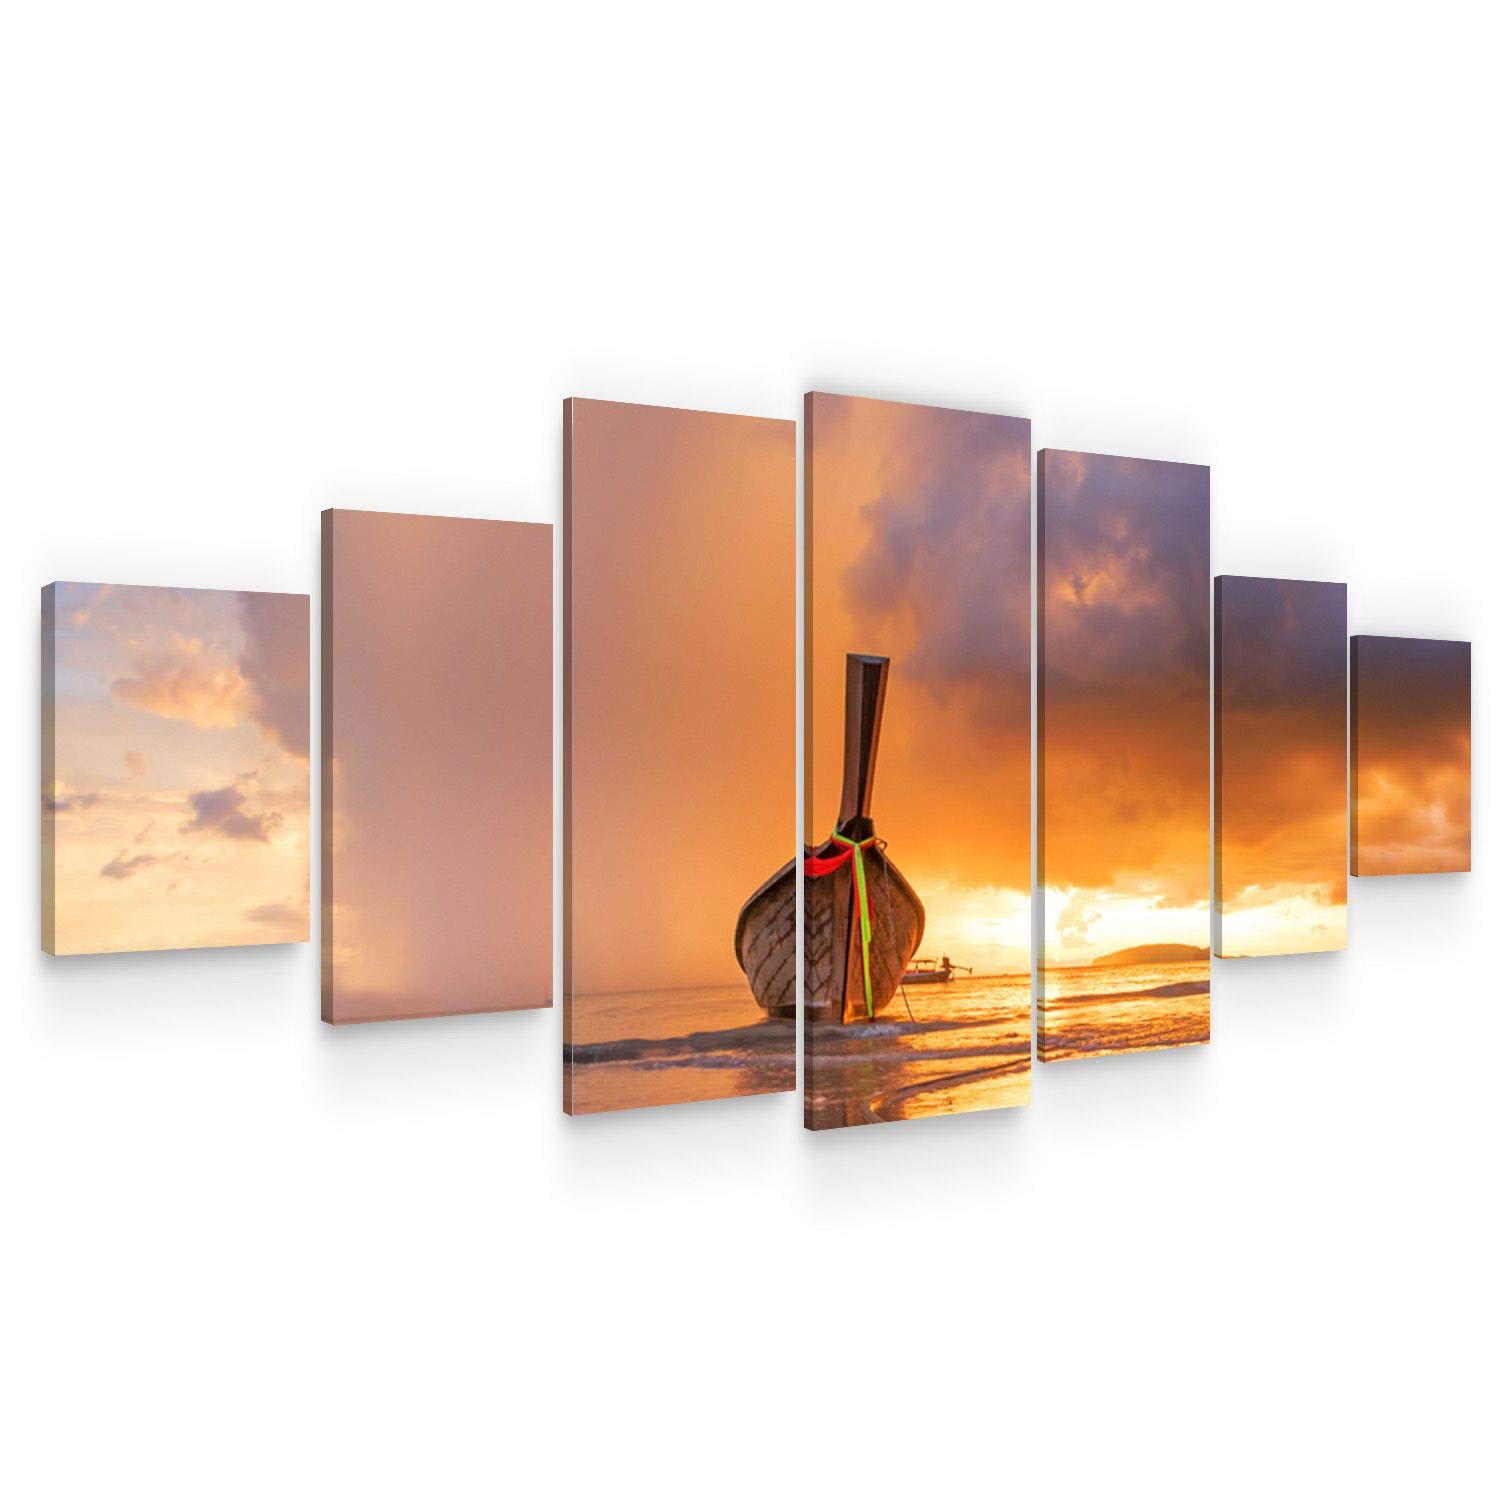 Startonight Large Canvas Wall Art Beach - A Boat at Sunset - Huge Framed Modern Set of 7 Panels 40 x 95 Inches